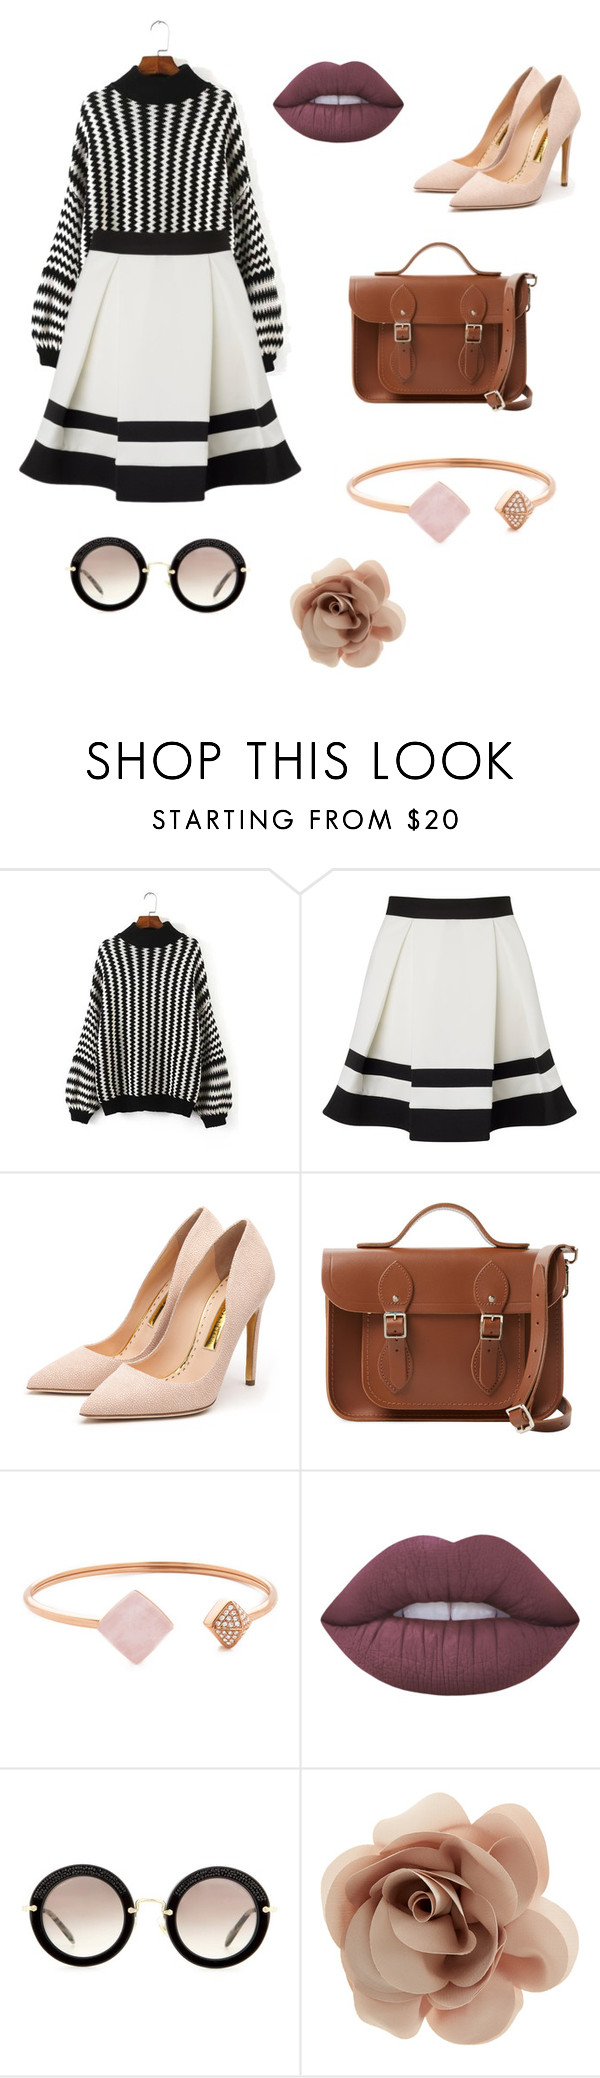 """Flashback"" by inordlund ❤ liked on Polyvore featuring Lipsy, Rupert Sanderson, The Cambridge Satchel Company, Michael Kors, Lime Crime, Miu Miu and Accessorize"